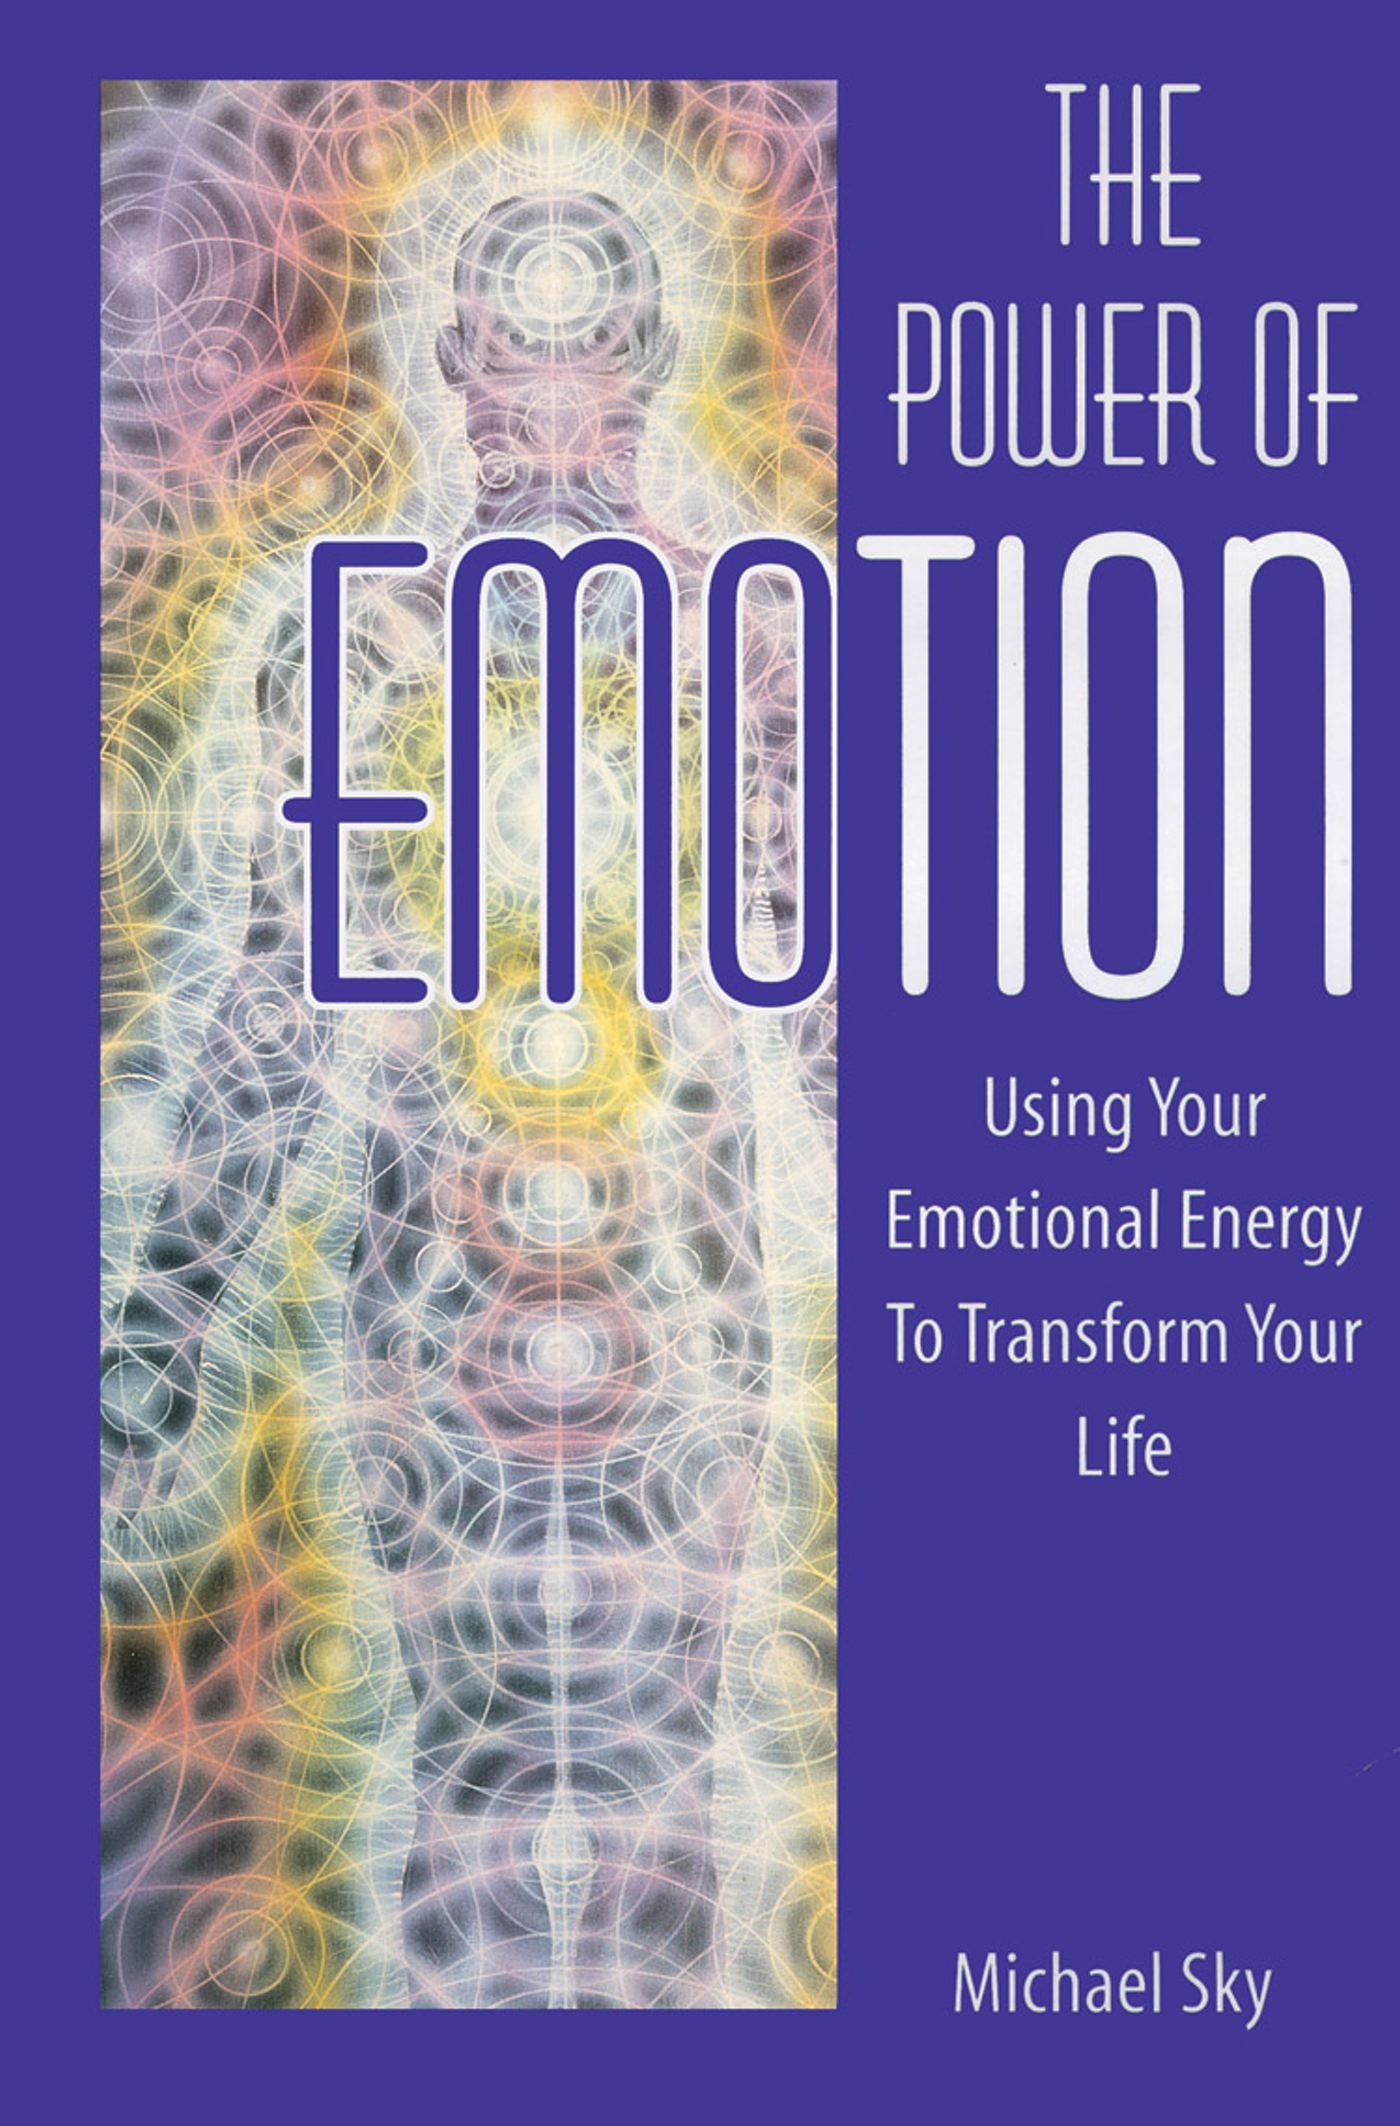 The-power-of-emotion-9781879181922_hr